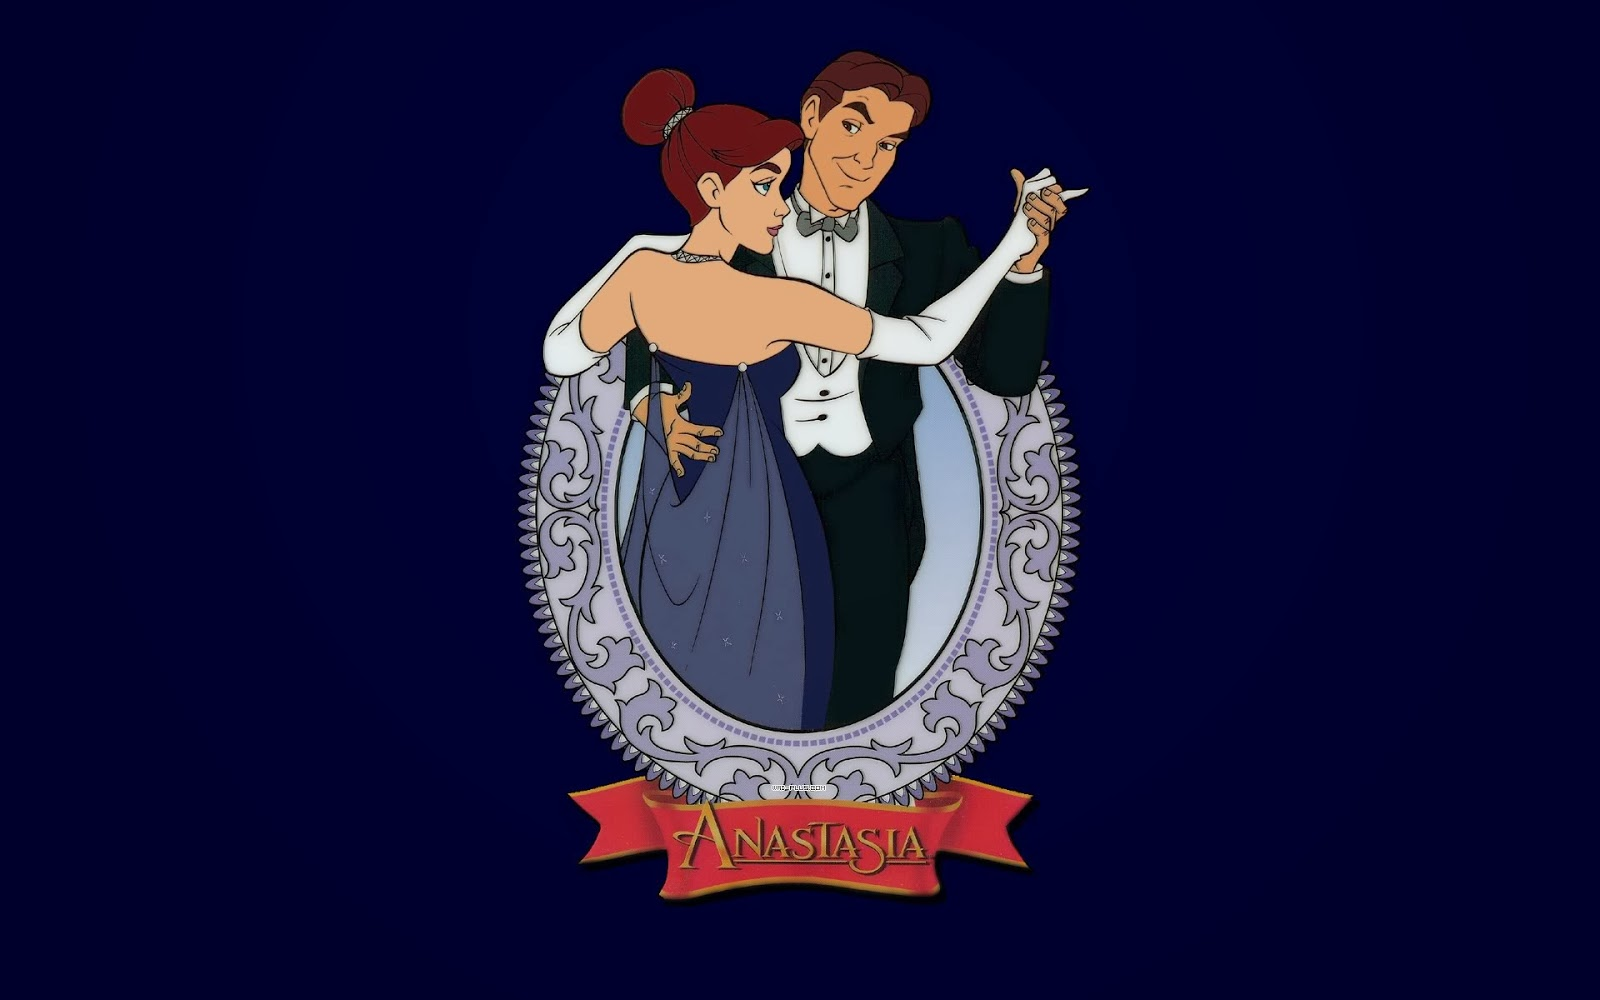 Cute Cartoon Couple Wallpapers For Mobile Free Hd Wallpaper Download Anastasia Wallpaper